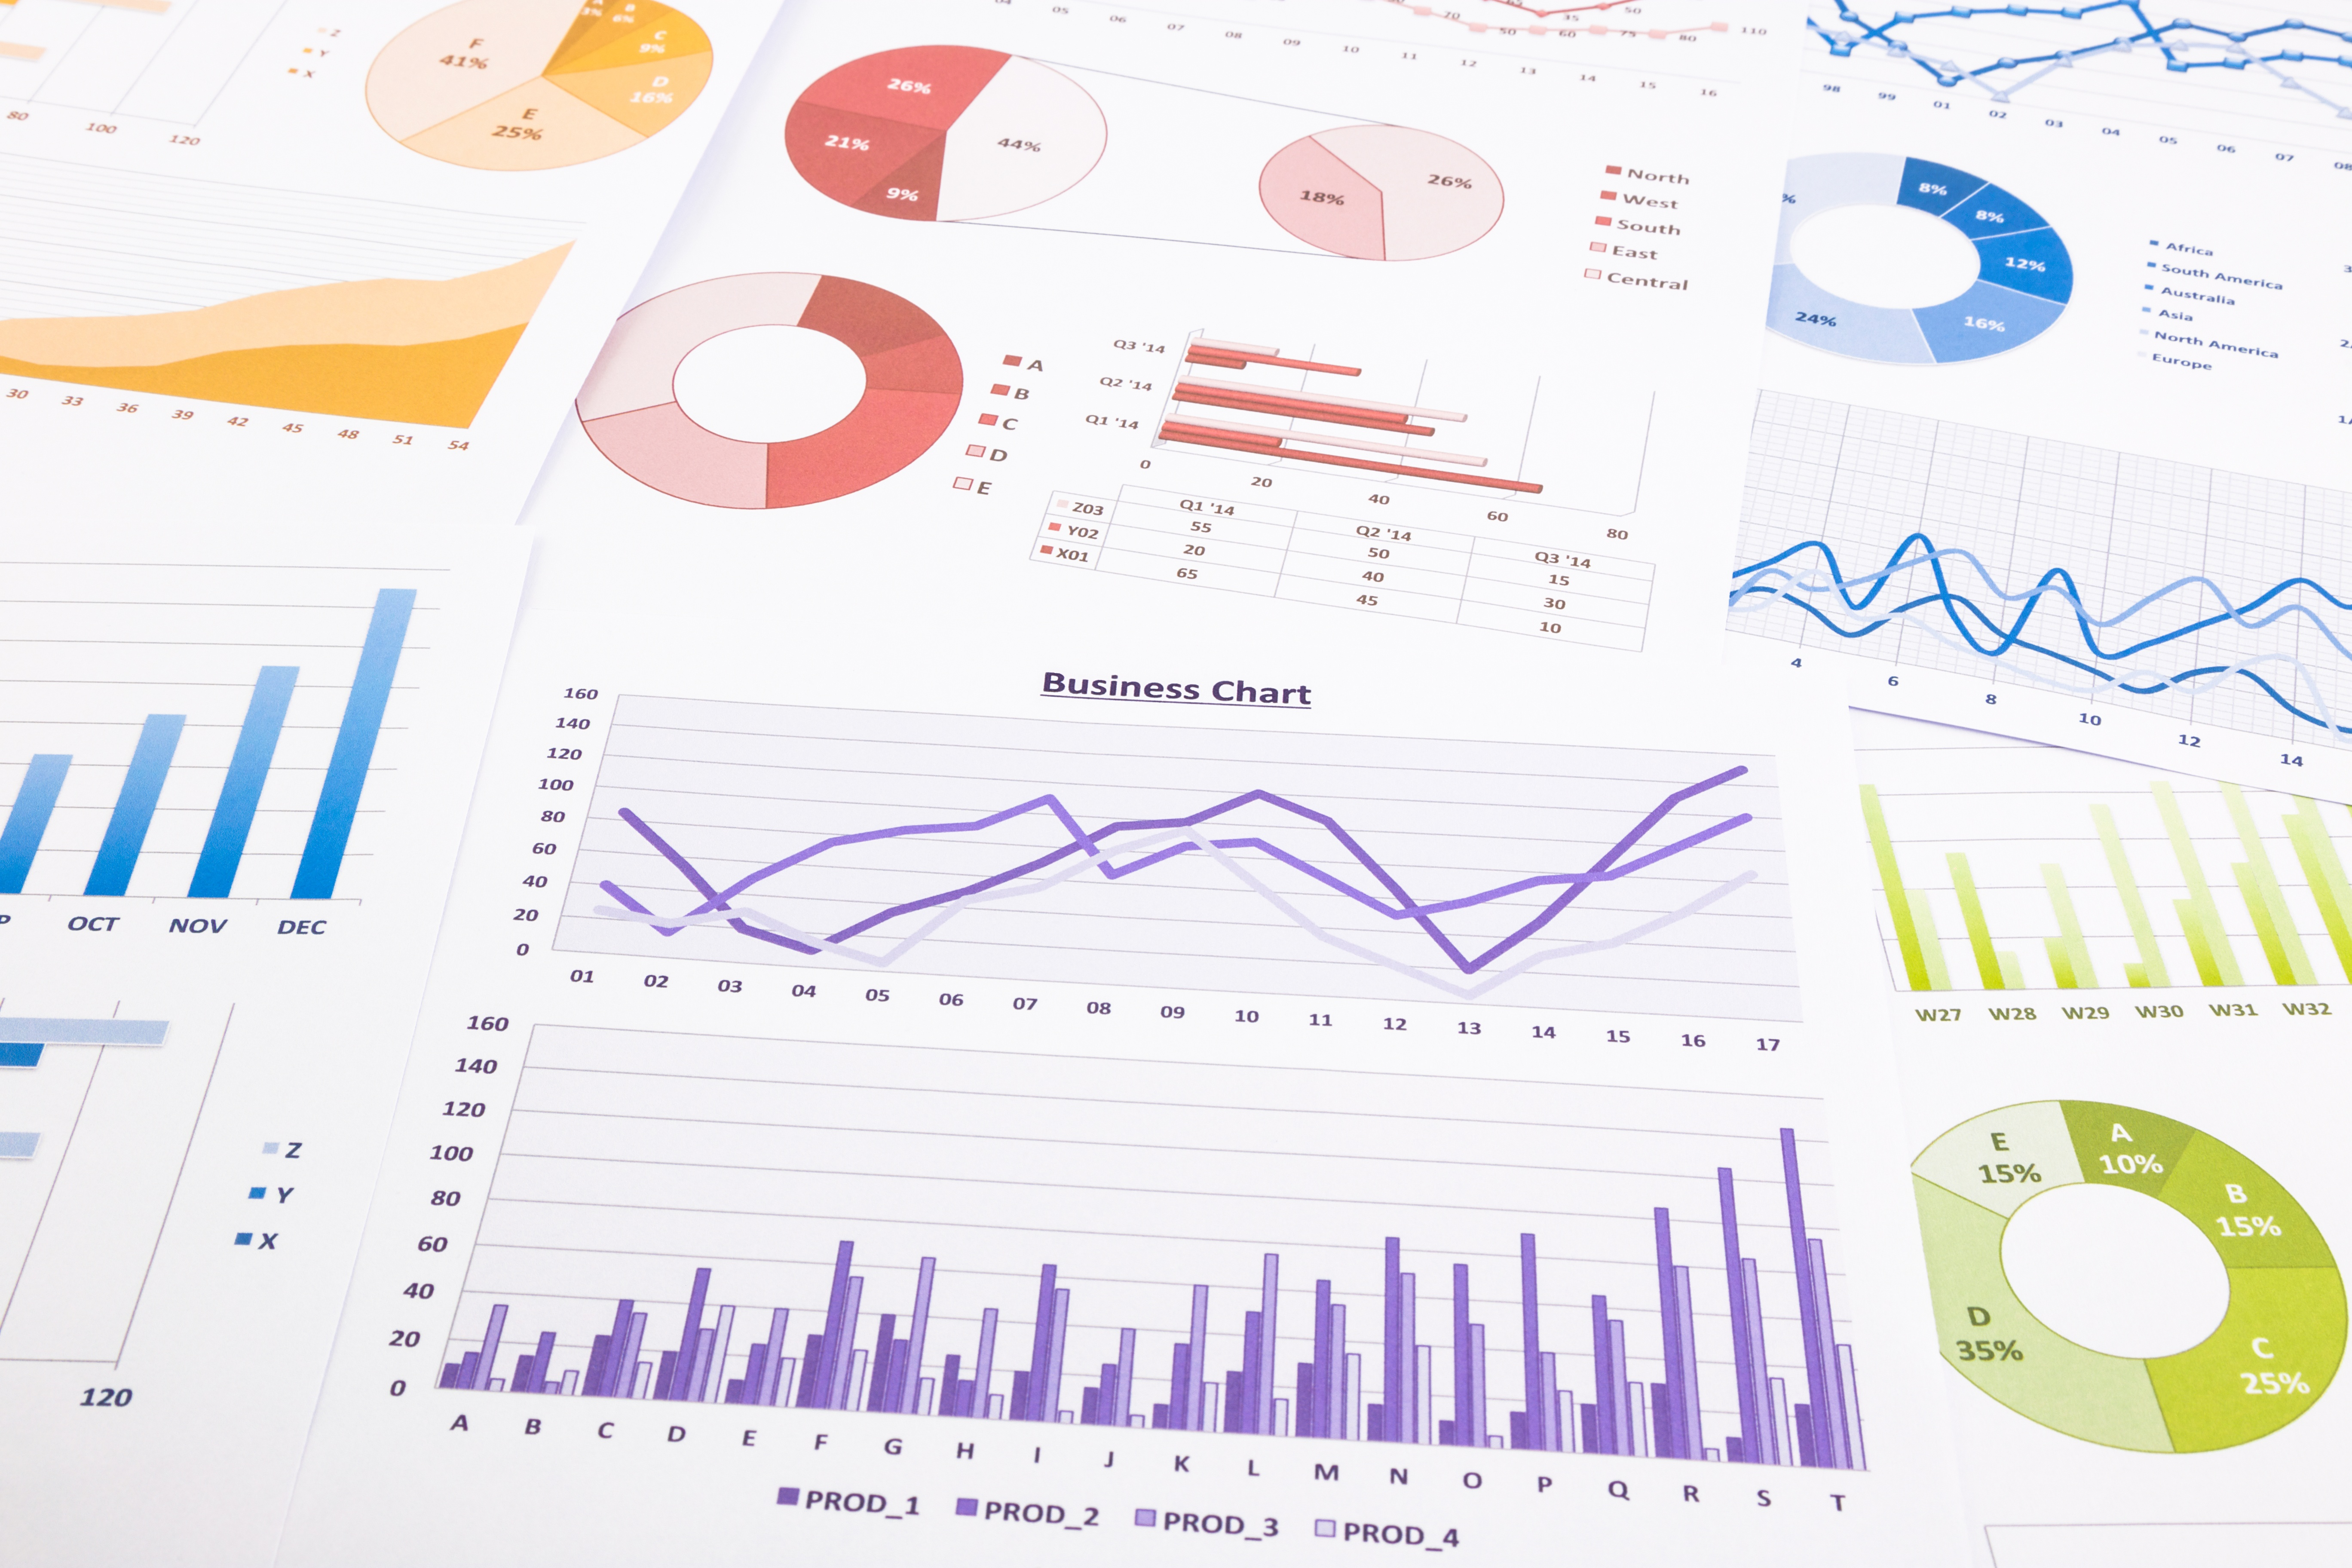 bigstock-Colorful-Graphs-Data-Analysis-68922151.jpg